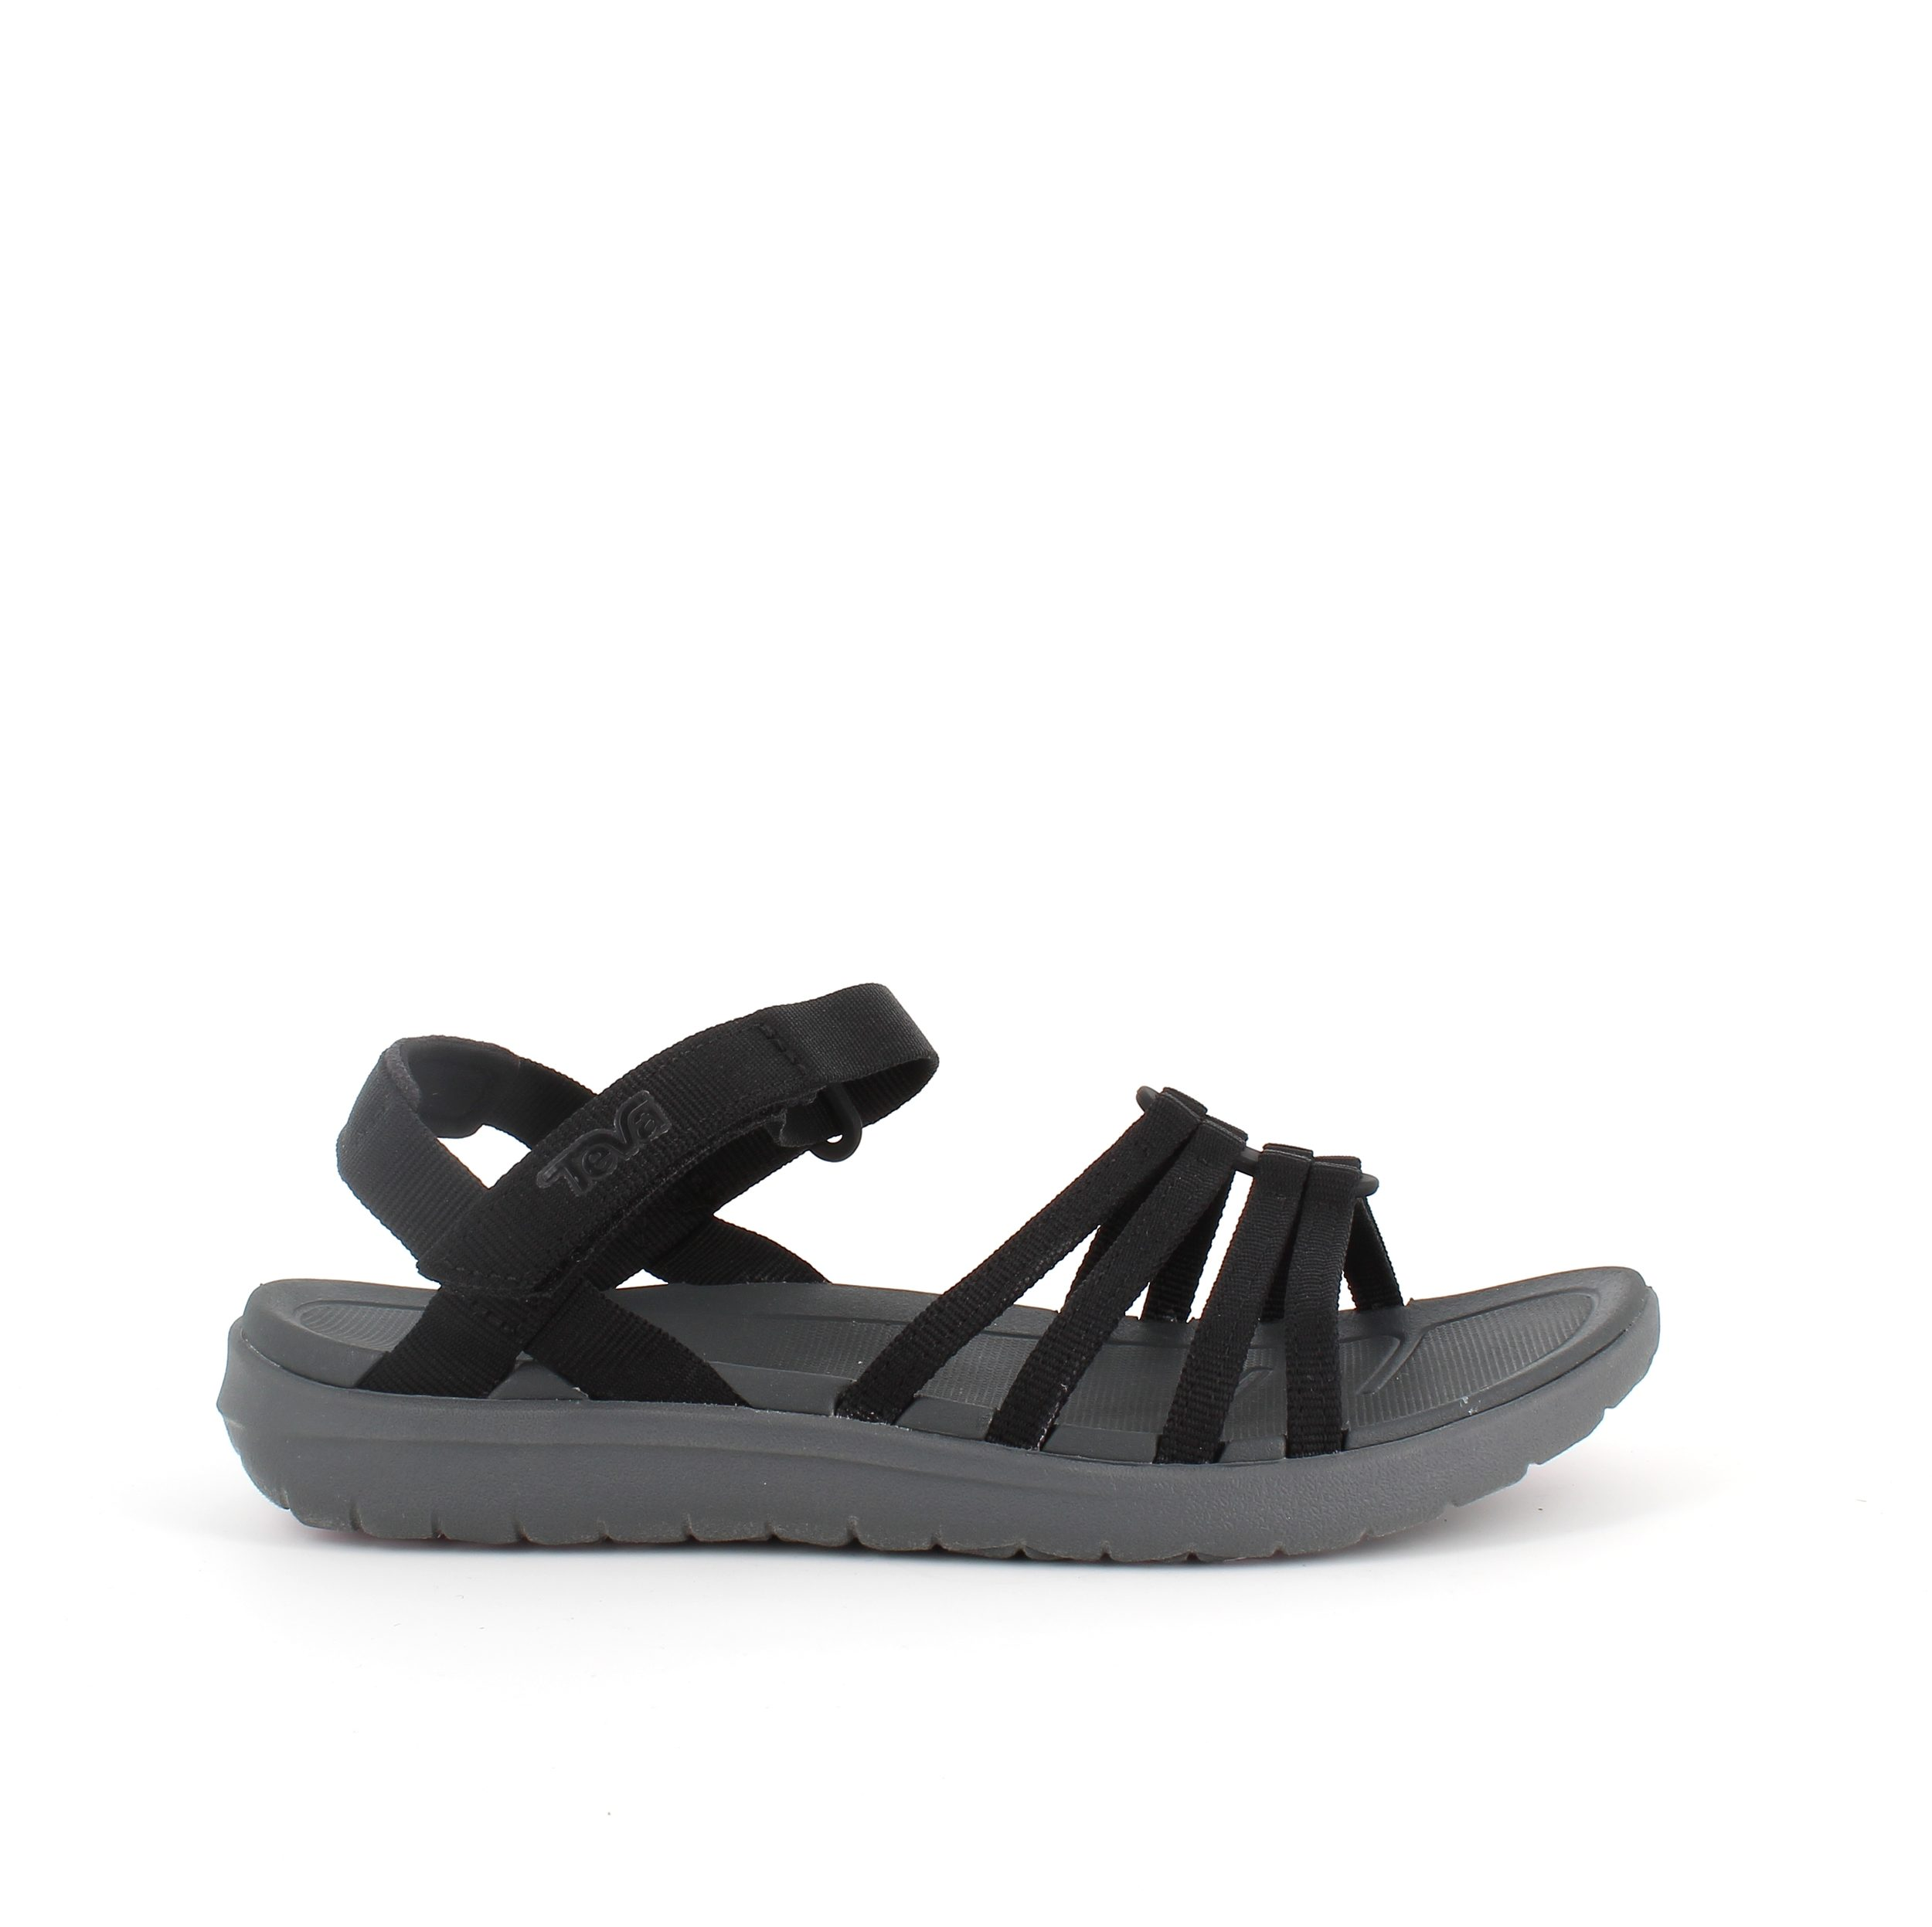 Image of   Teva Sanborn sort sandal - 42